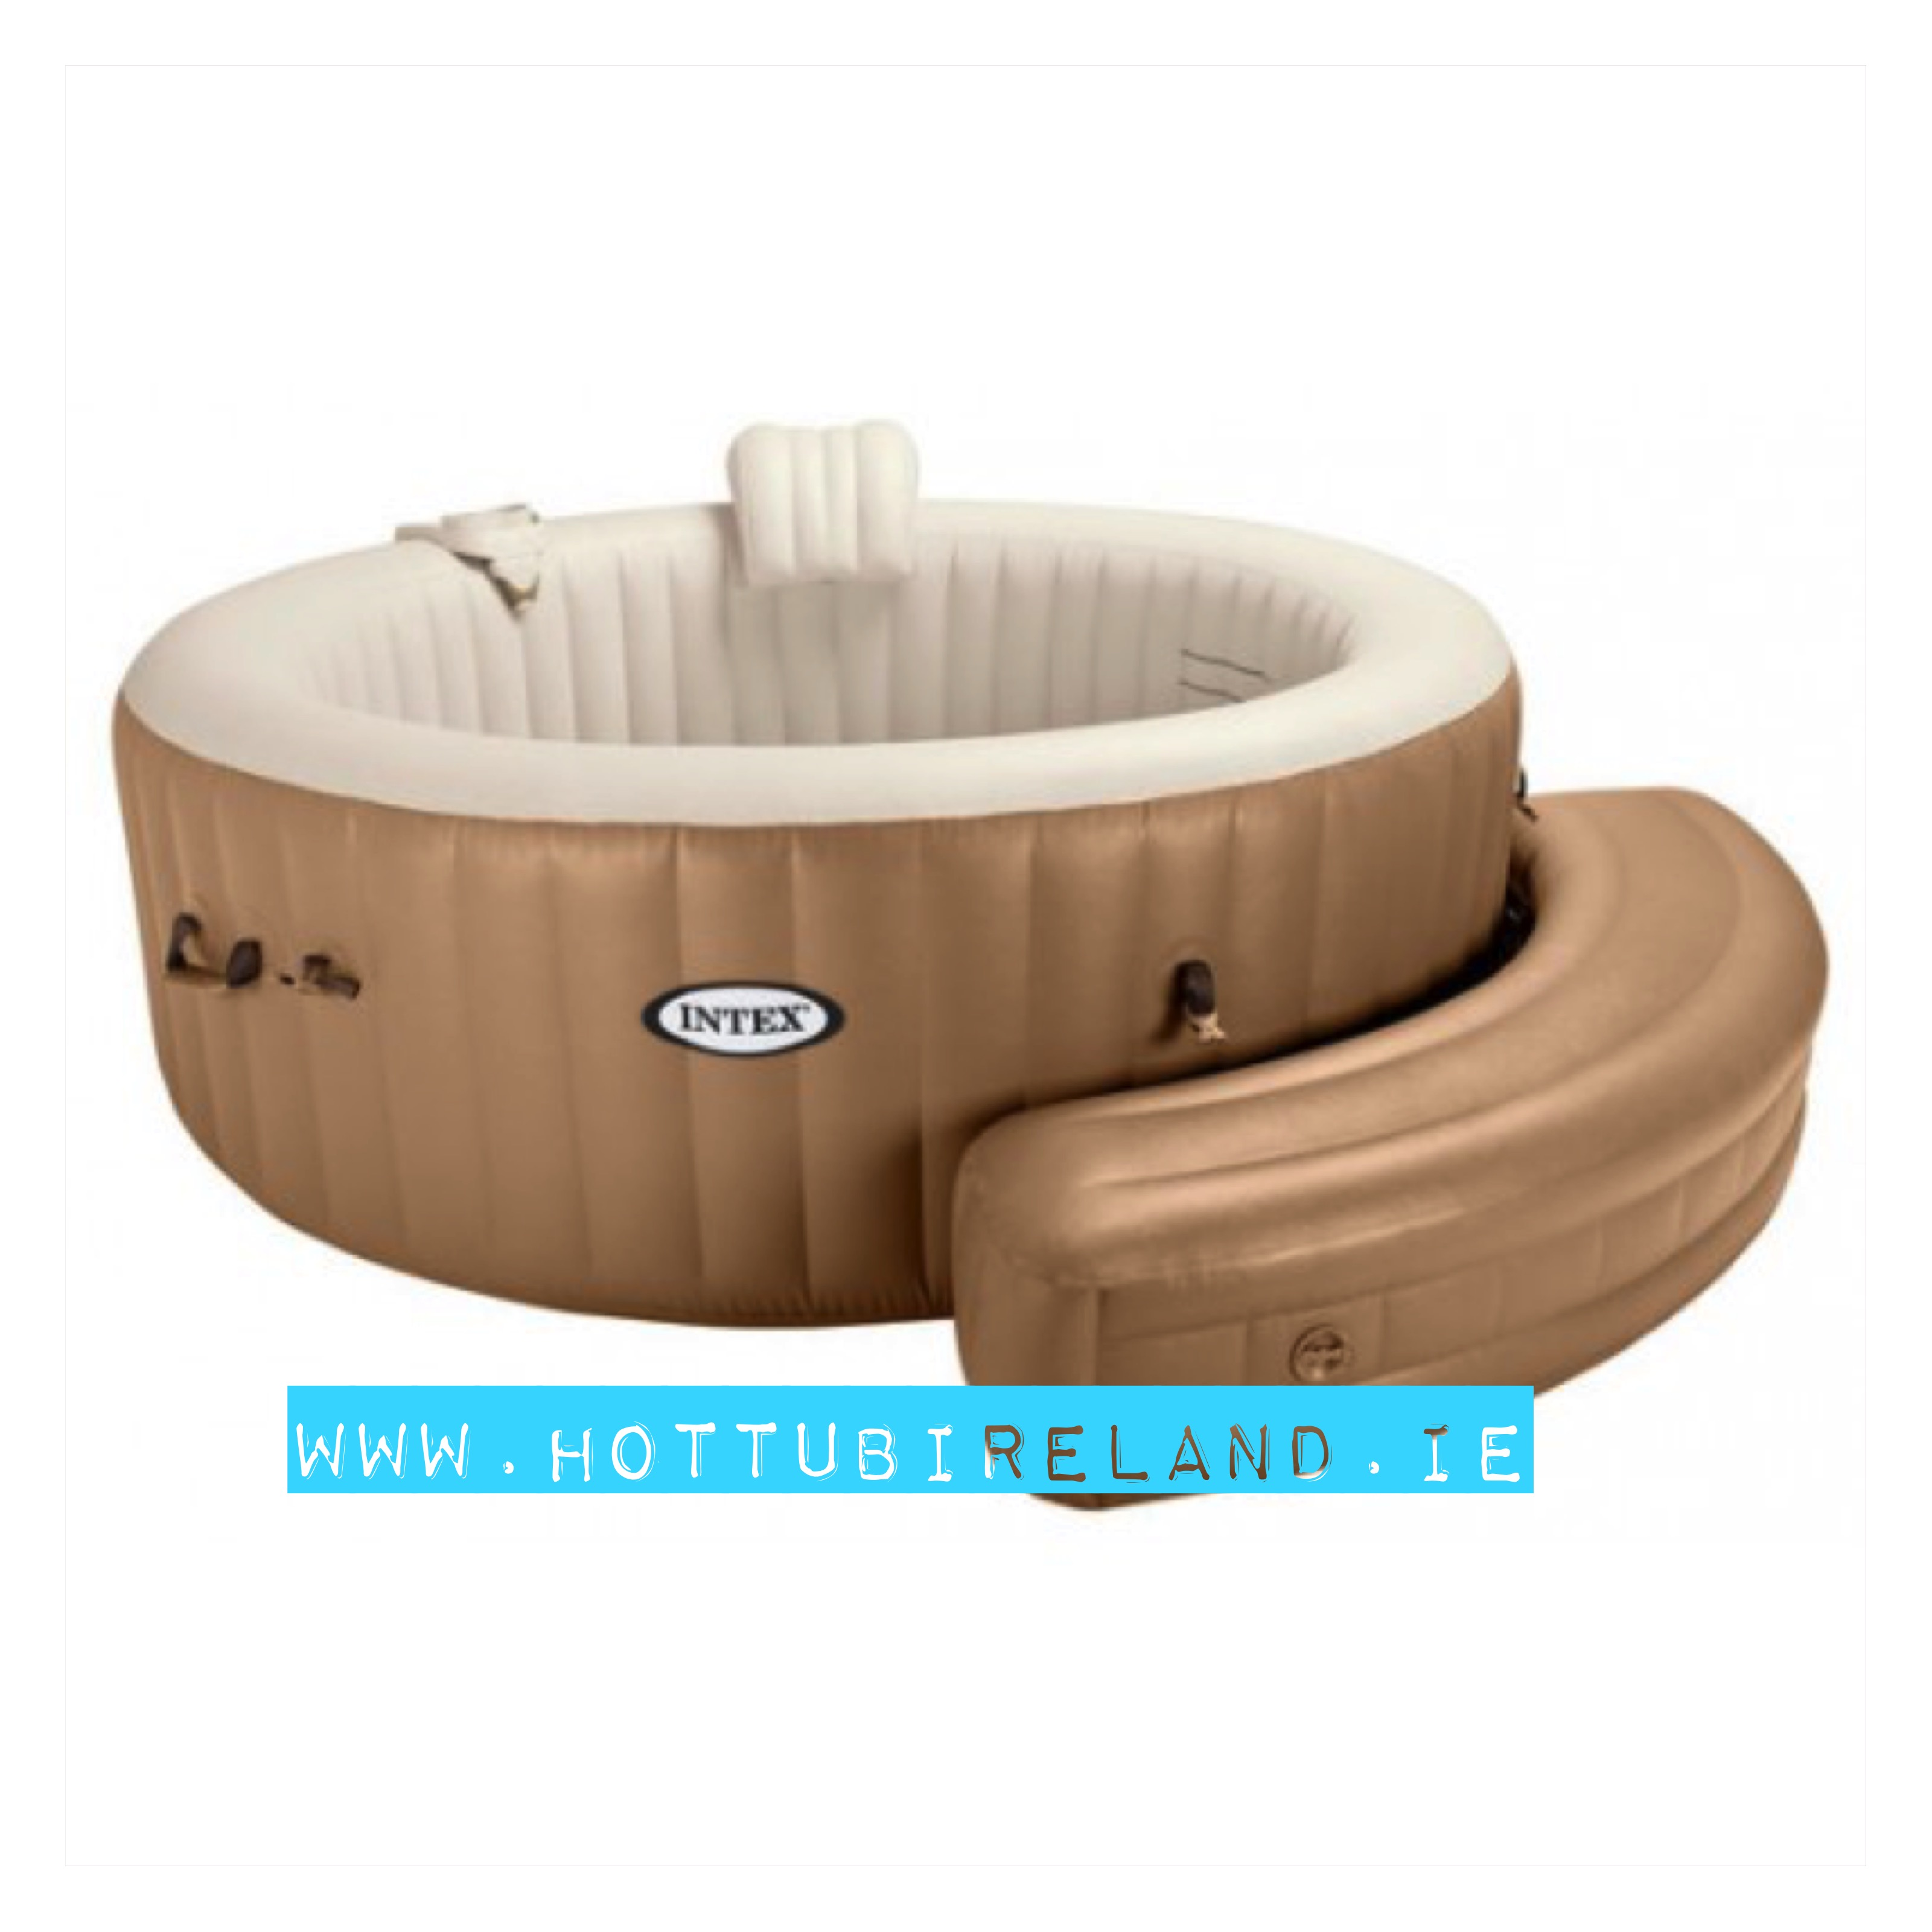 hot tub accessories for intex and lay z spa hot tub ireland. Black Bedroom Furniture Sets. Home Design Ideas